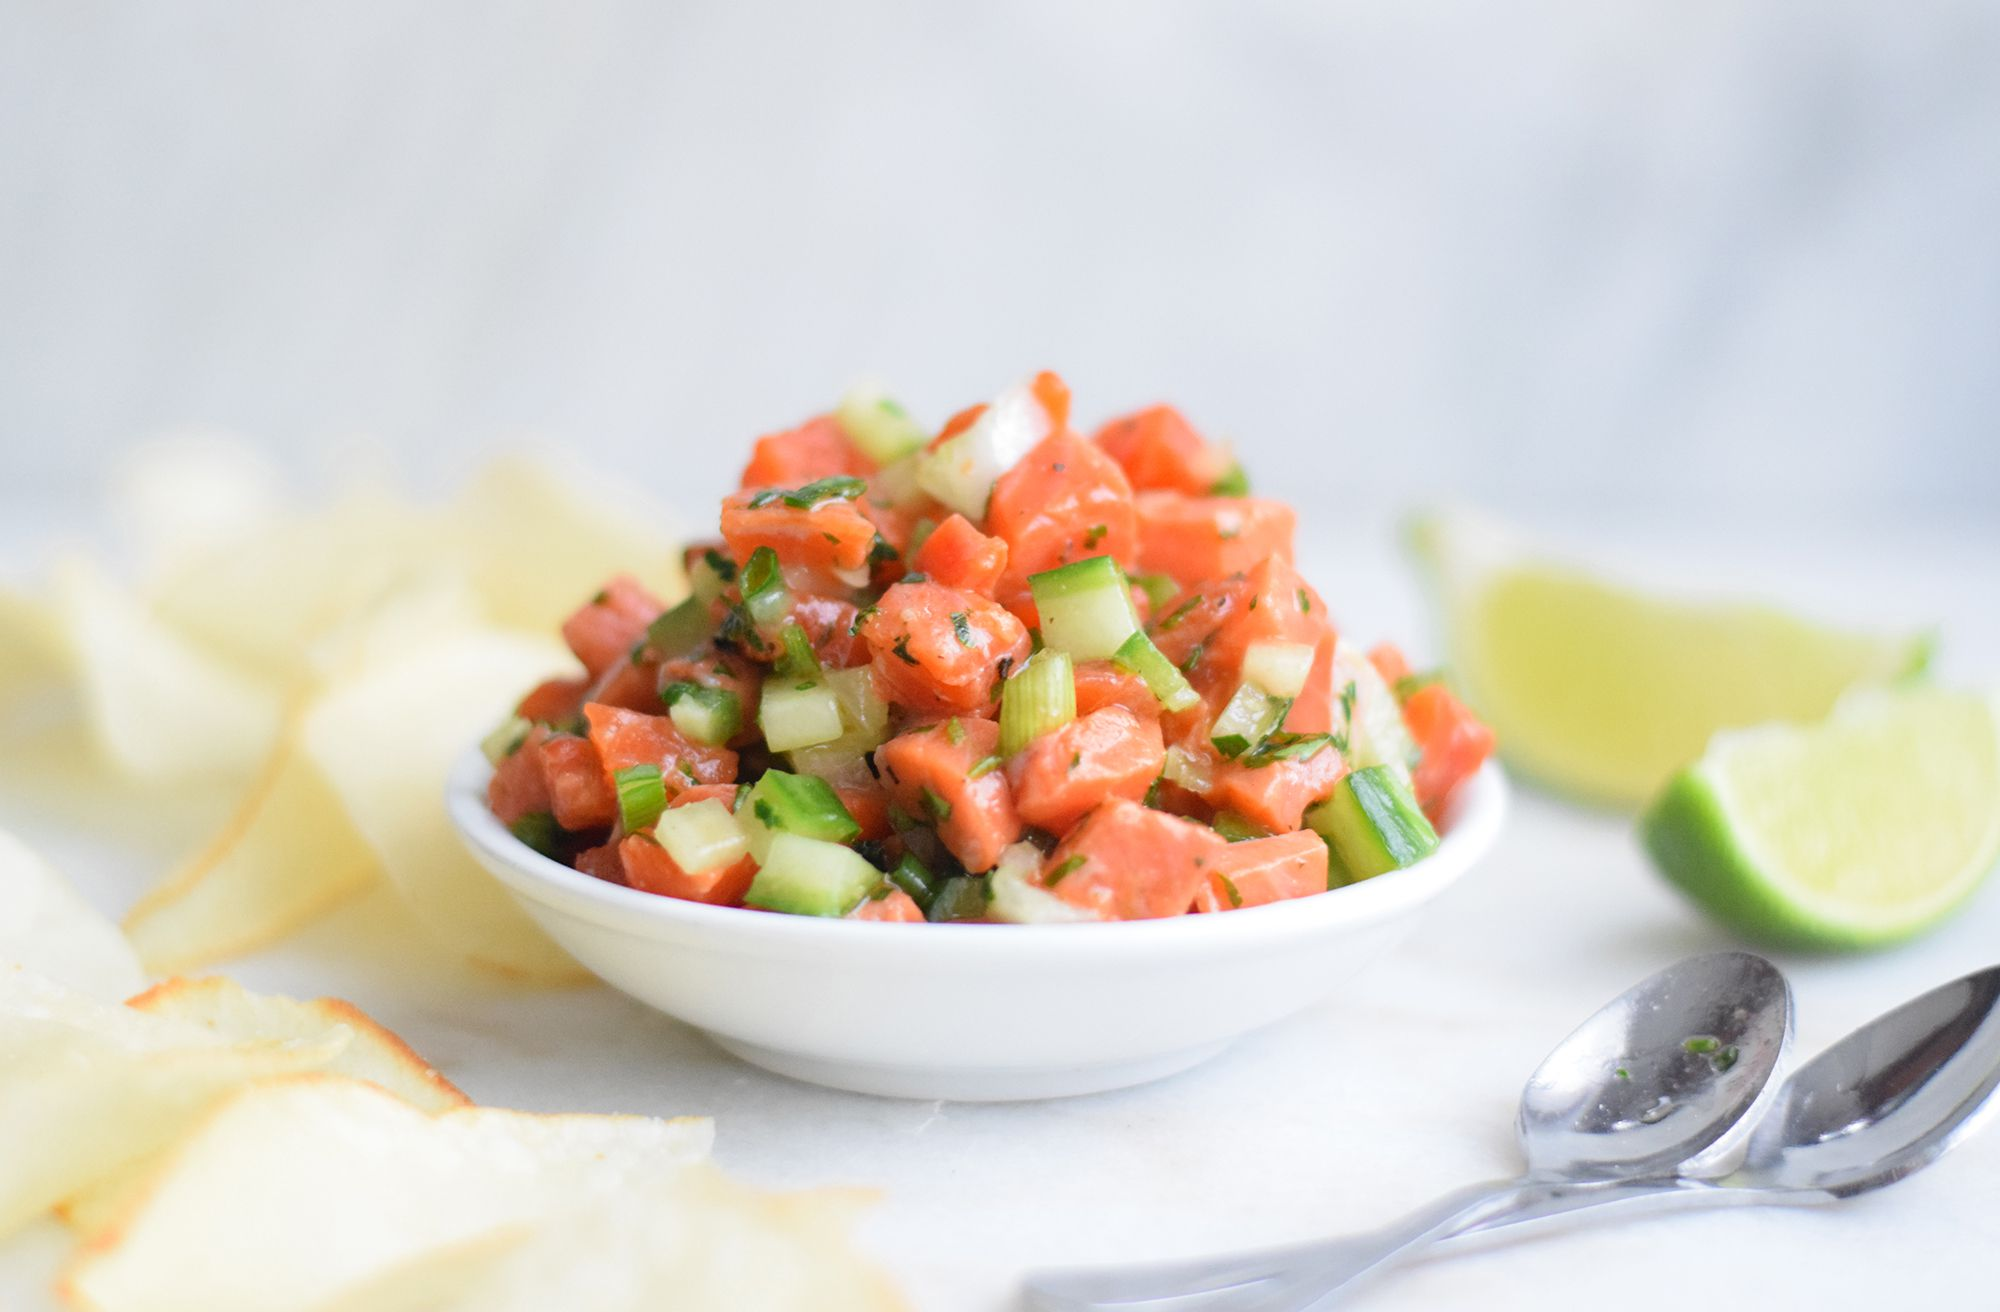 A dish piled with salmon tartare